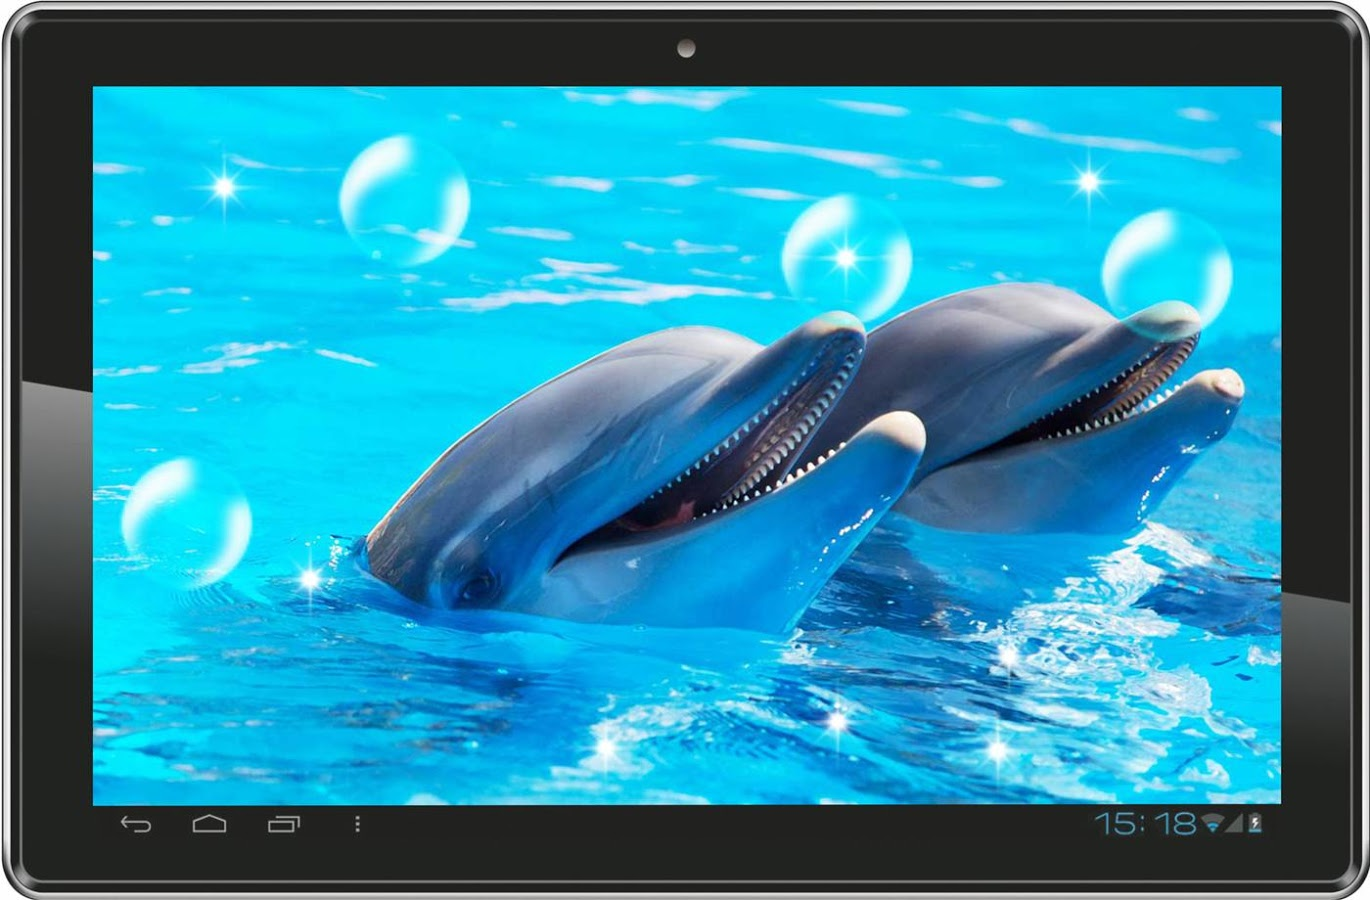 Dolphin HQ live wallpaper   Android Apps on Google Play 1370x900